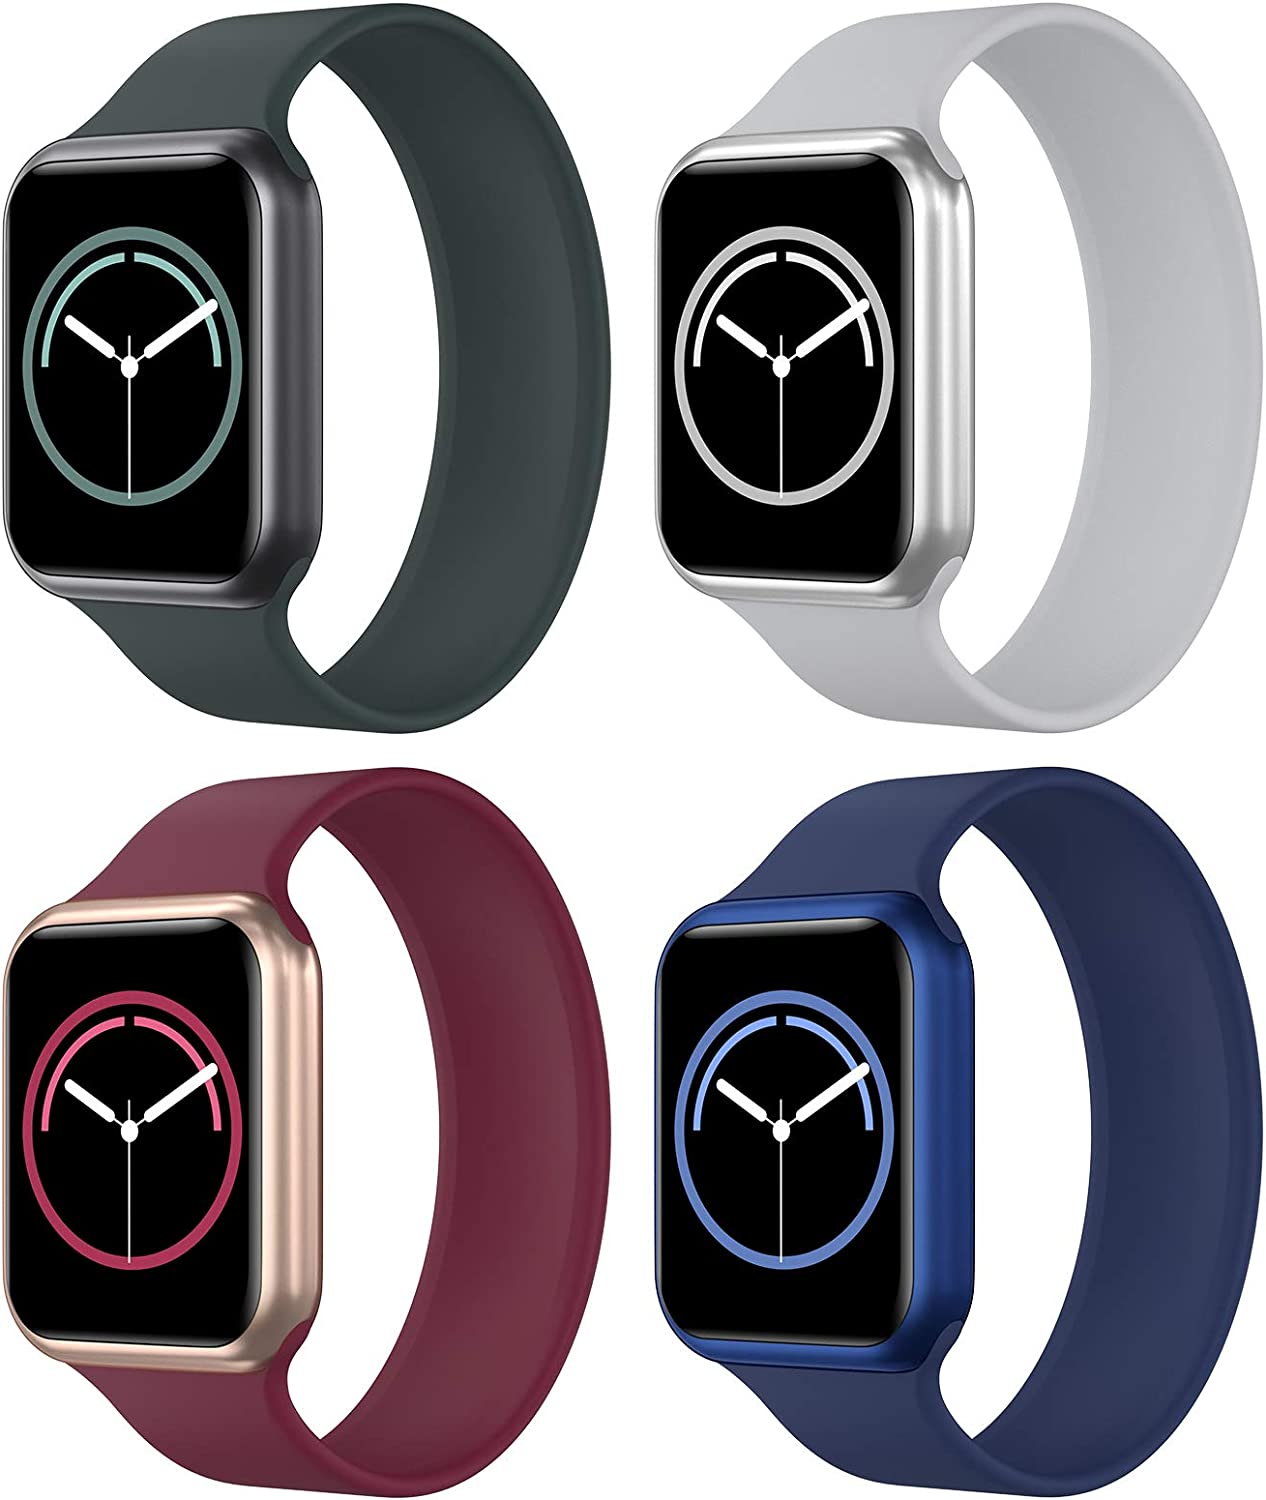 KRISVI Pack 4 Sport Bands Compatible with Apple Watch Bands 42mm 44mm, Stretchable Apple Watch Solo Loop with No Clasps or Buckles for Men Women iWatch Series 6 5 4 3 2 1 SE(42M-6)